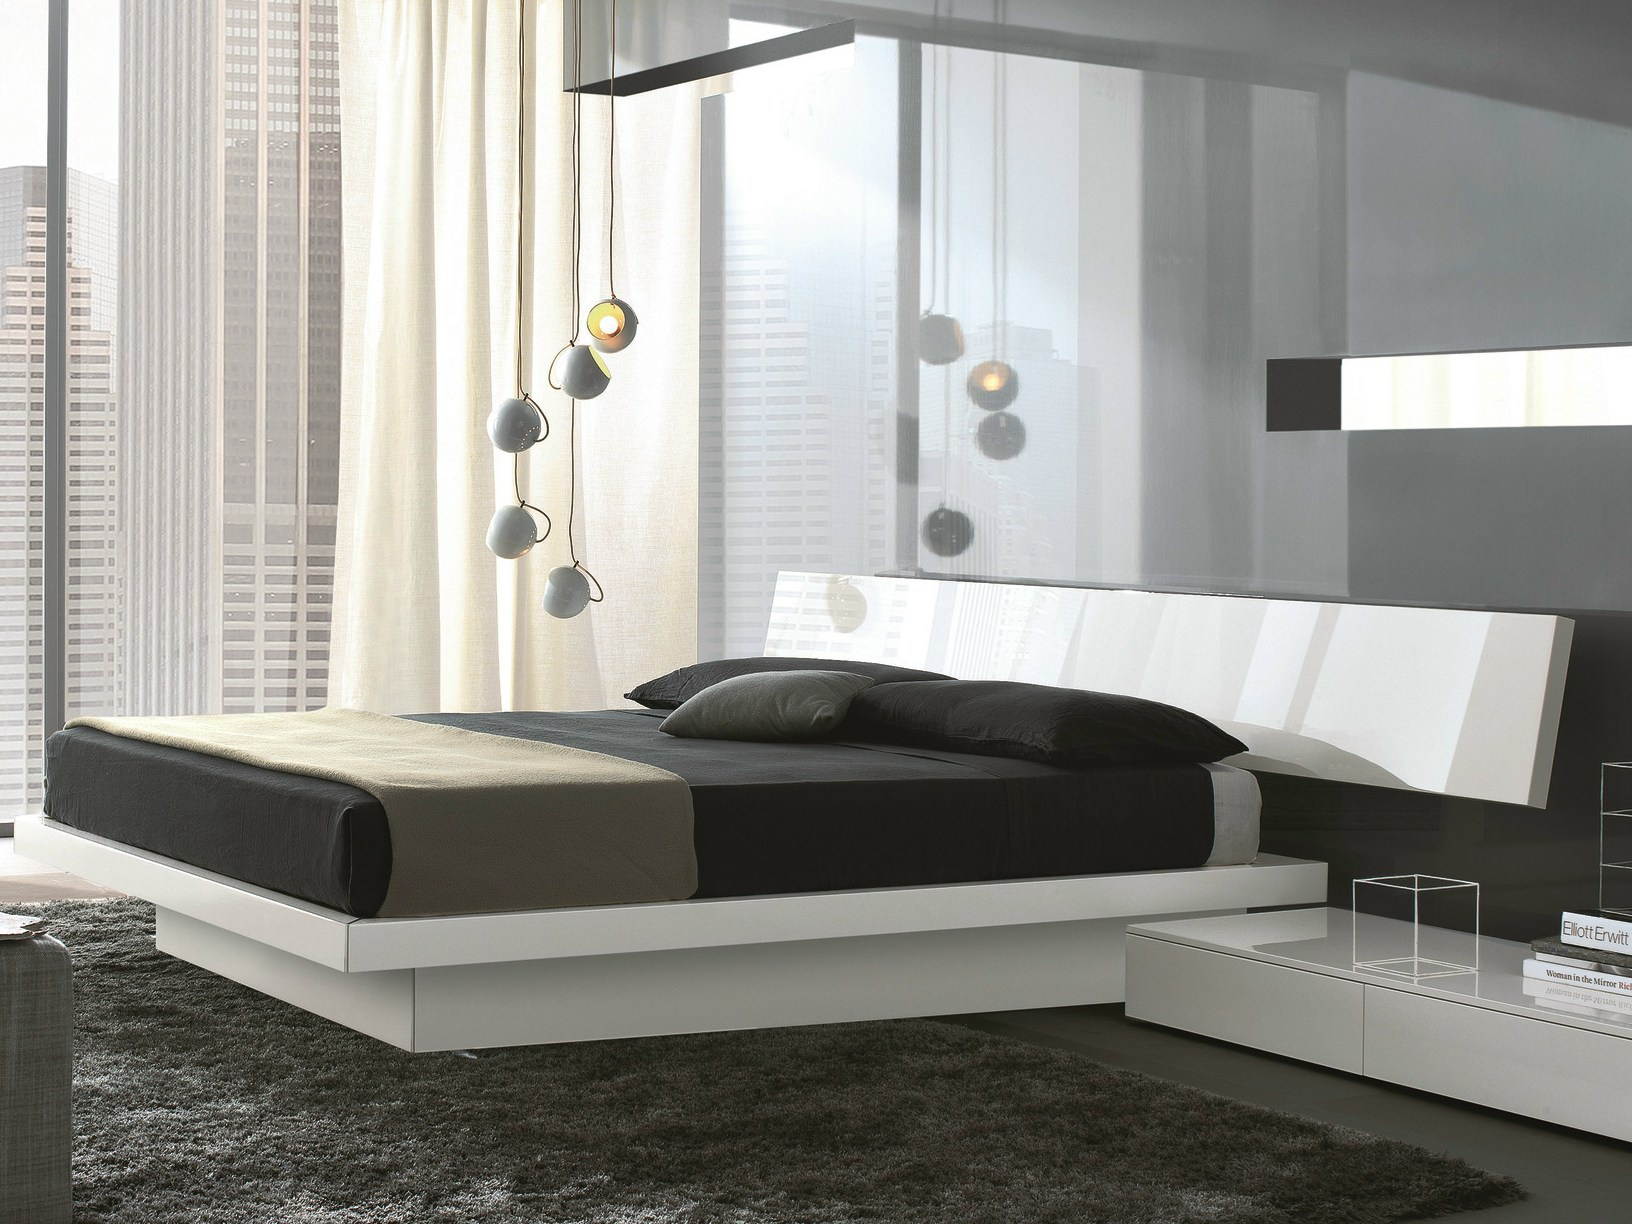 Bed upholstered in leather or fabric slim misuraemme for Misuraemme bed